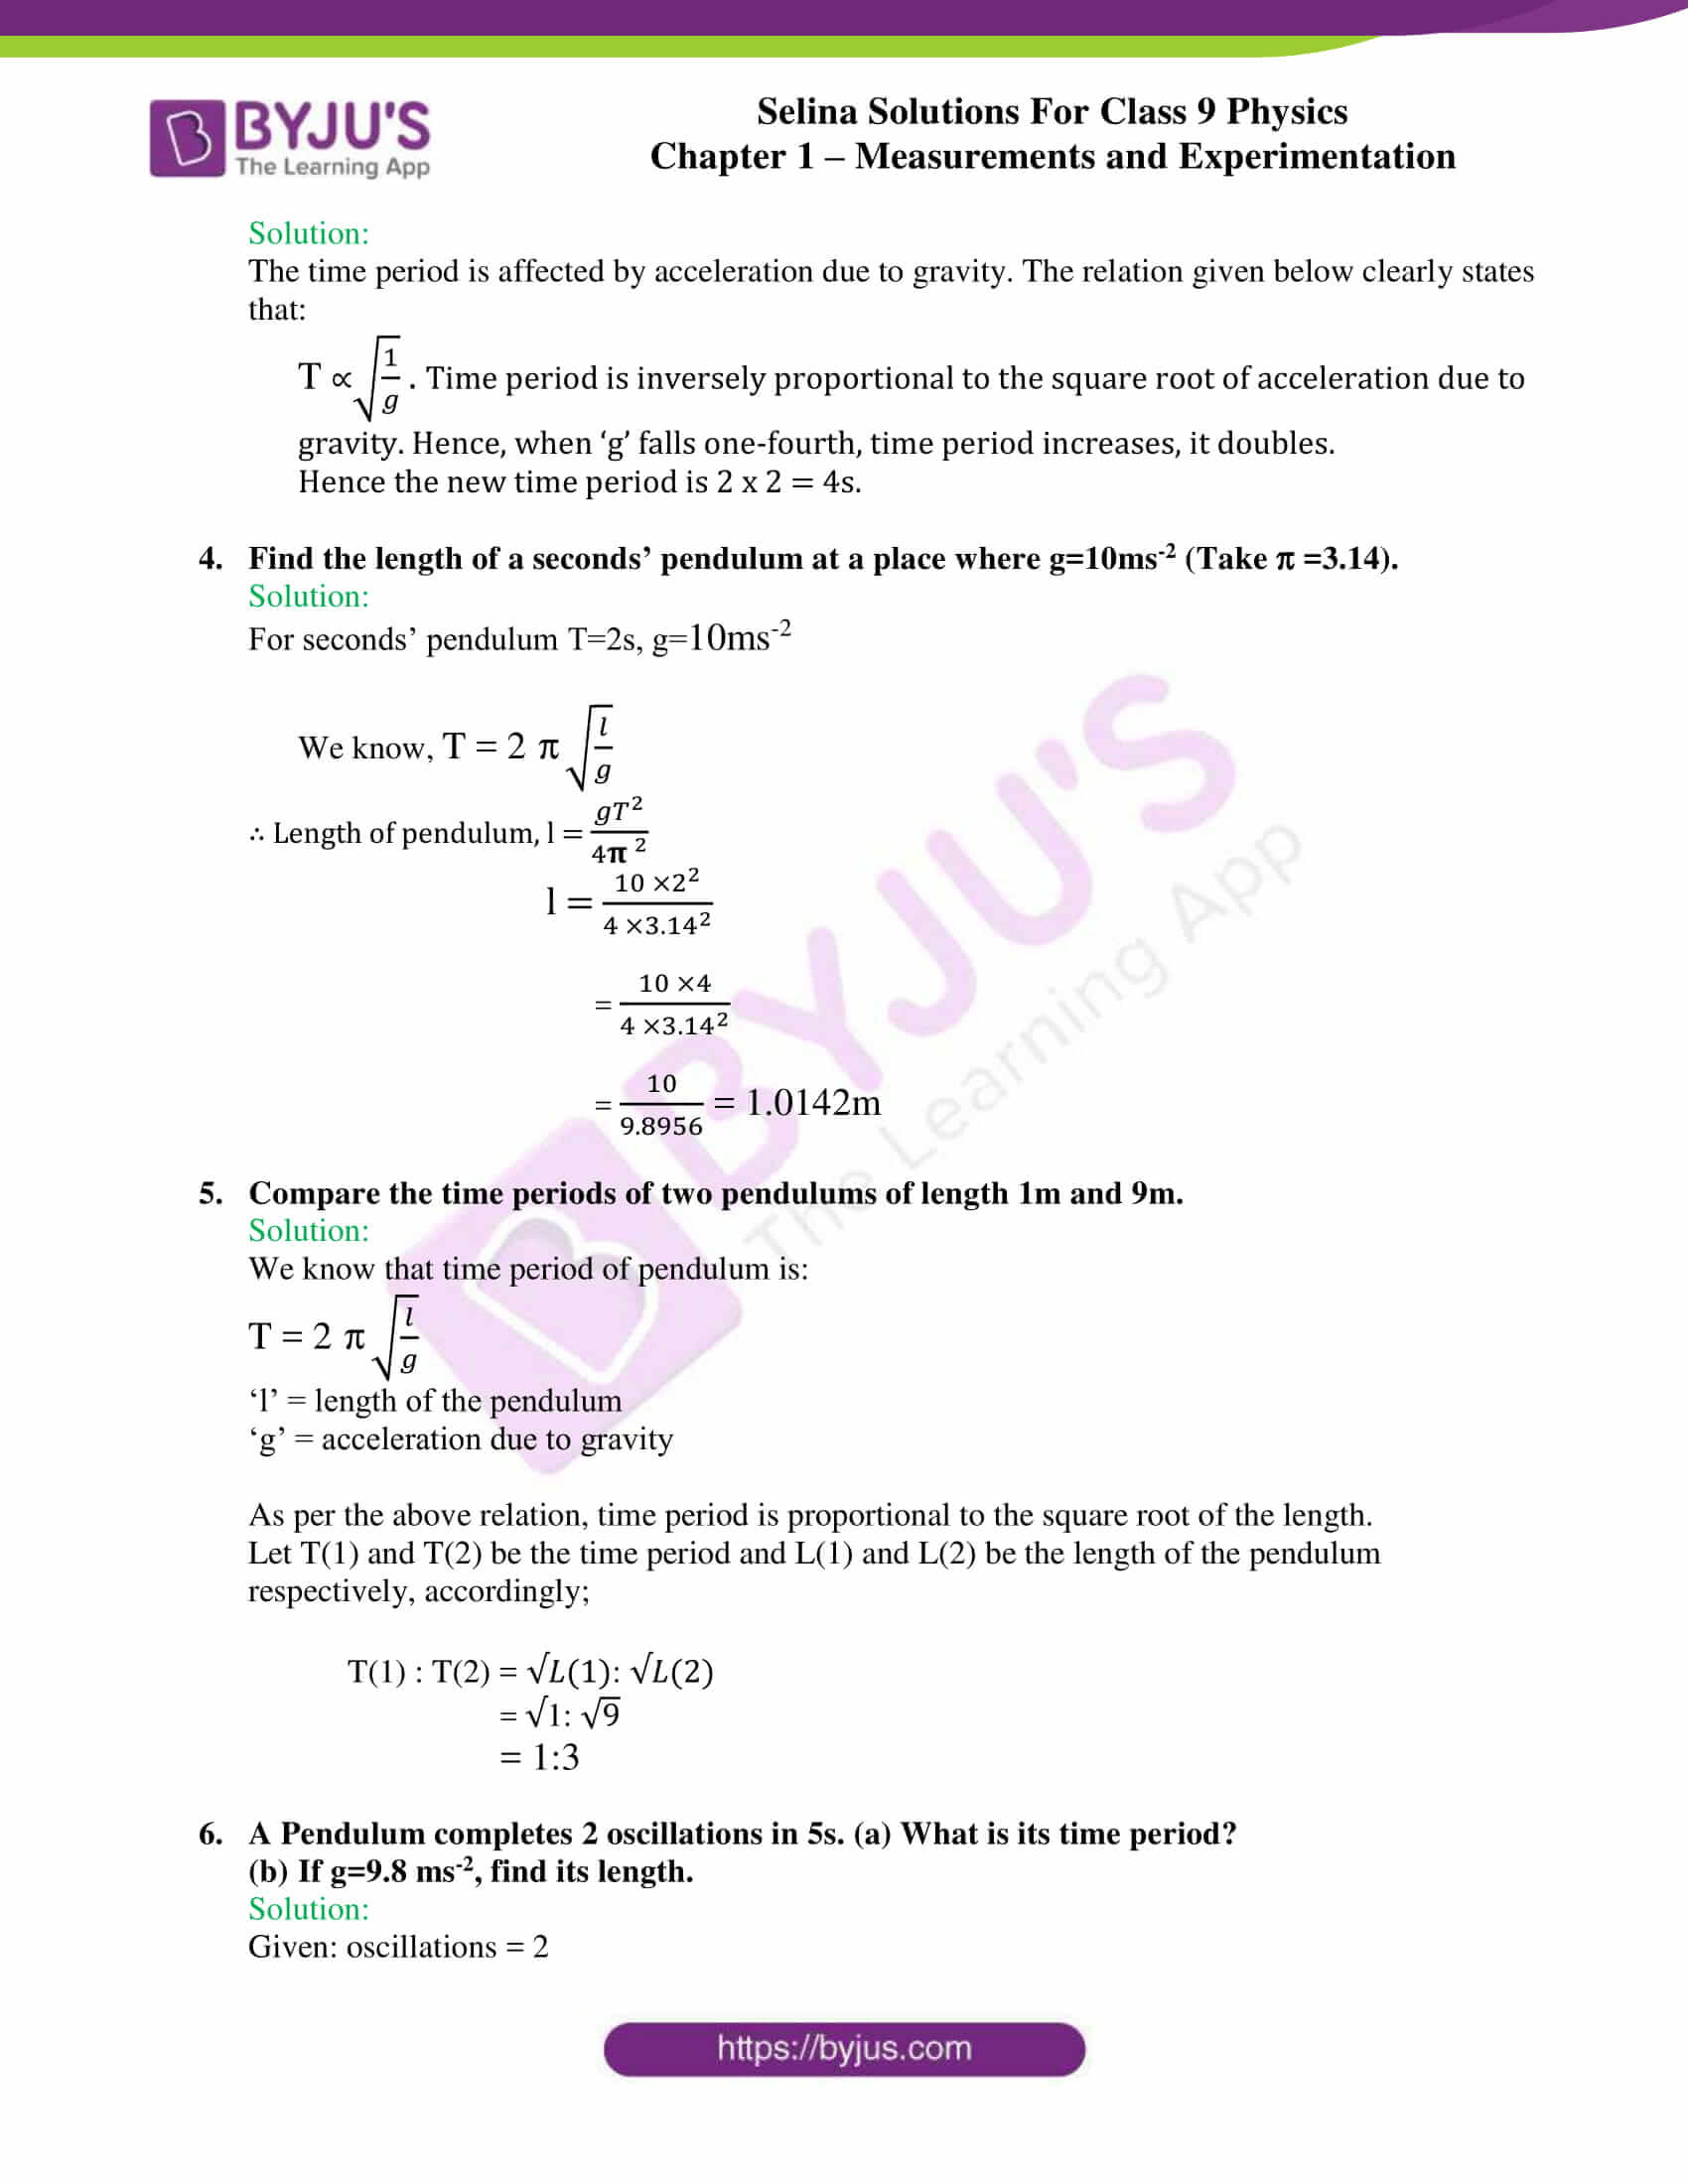 selina solutions class 9 physics chapter 1 Measurements and Experimentation part 30